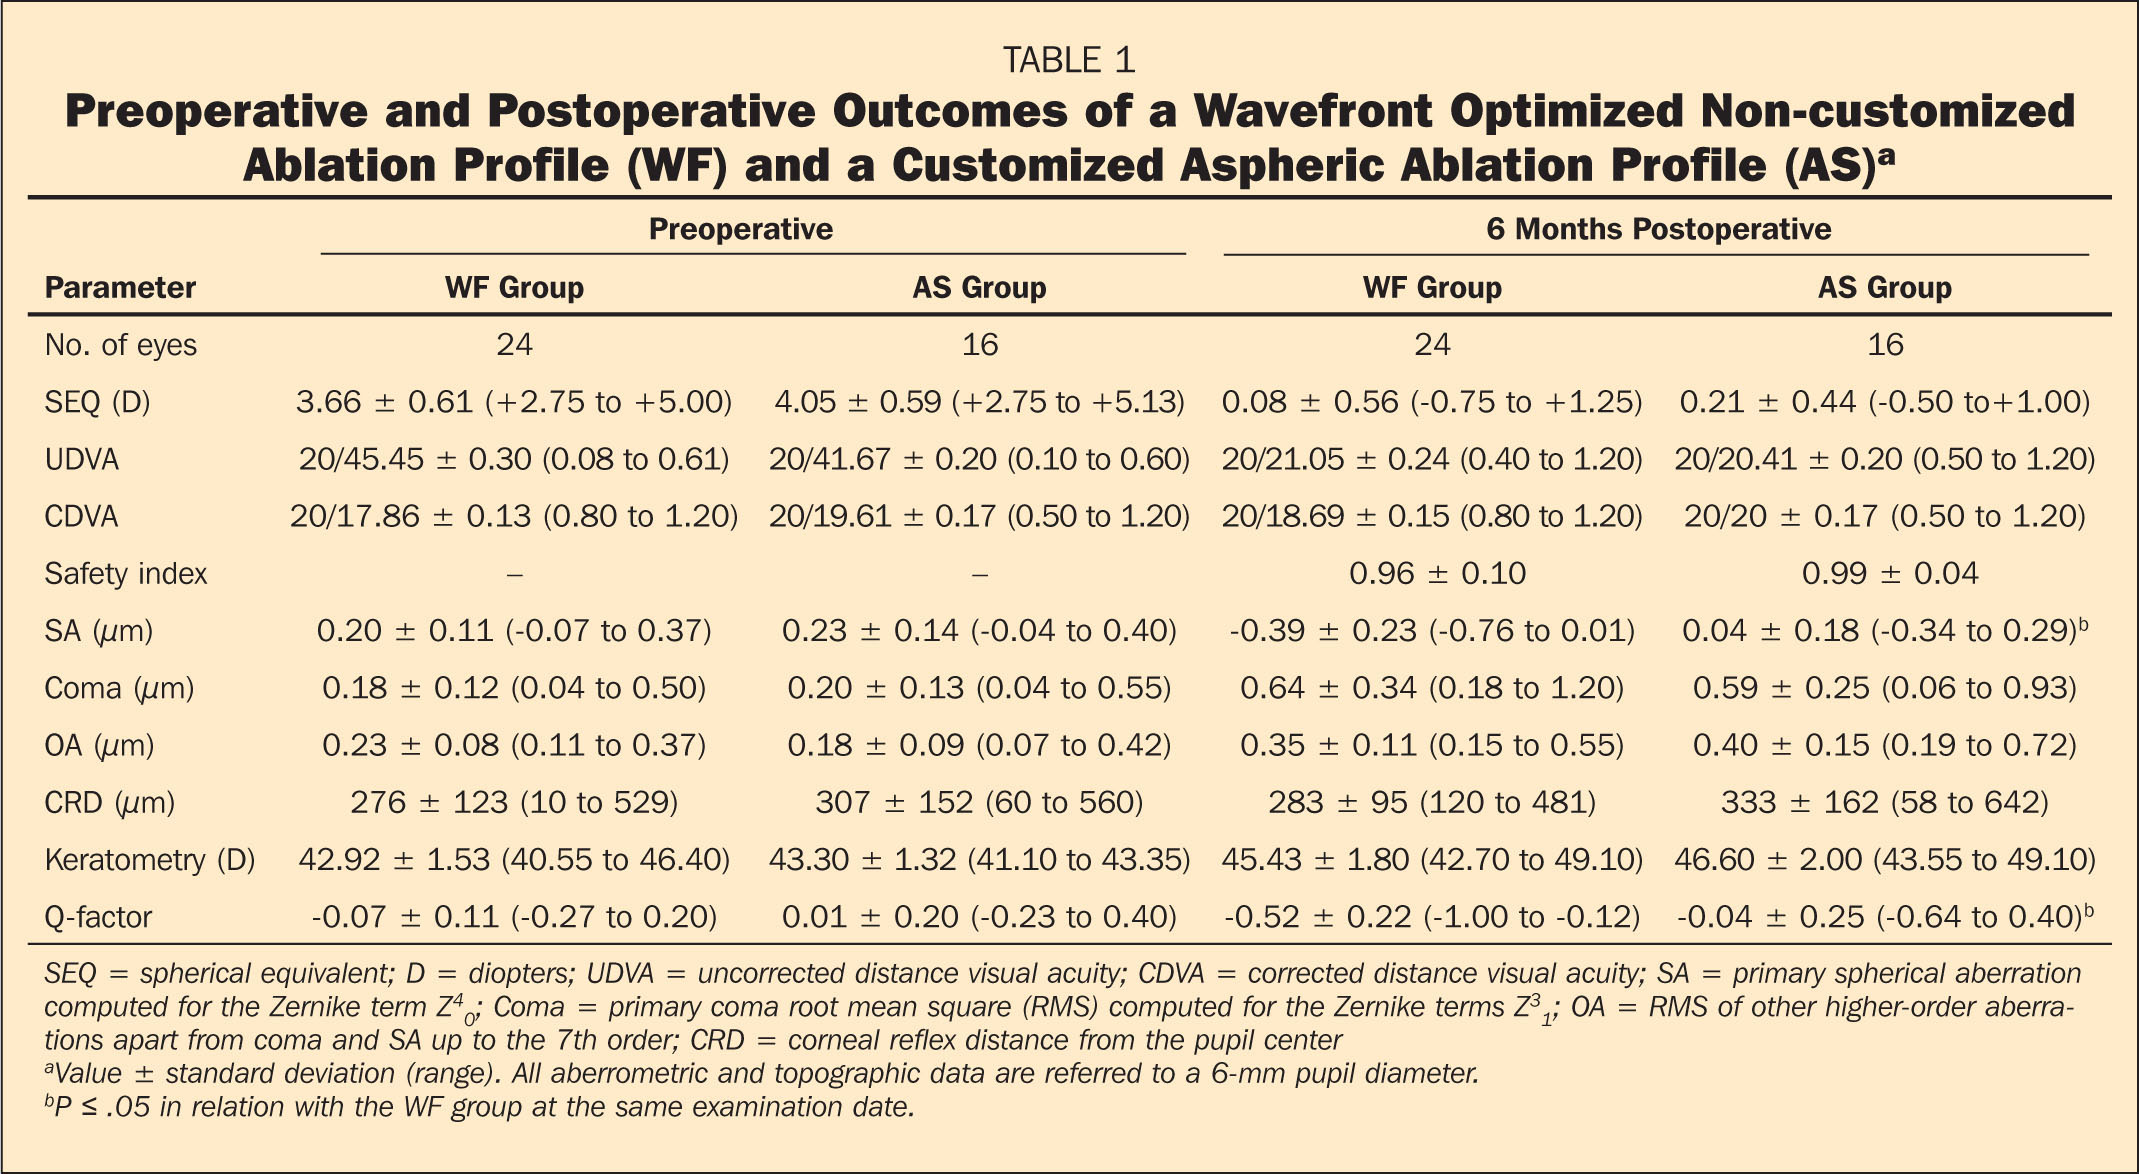 Preoperative and Postoperative Outcomes of a Wavefront Optimized Non-customized Ablation Profile (WF) and a Customized Aspheric Ablation Profile (AS)a